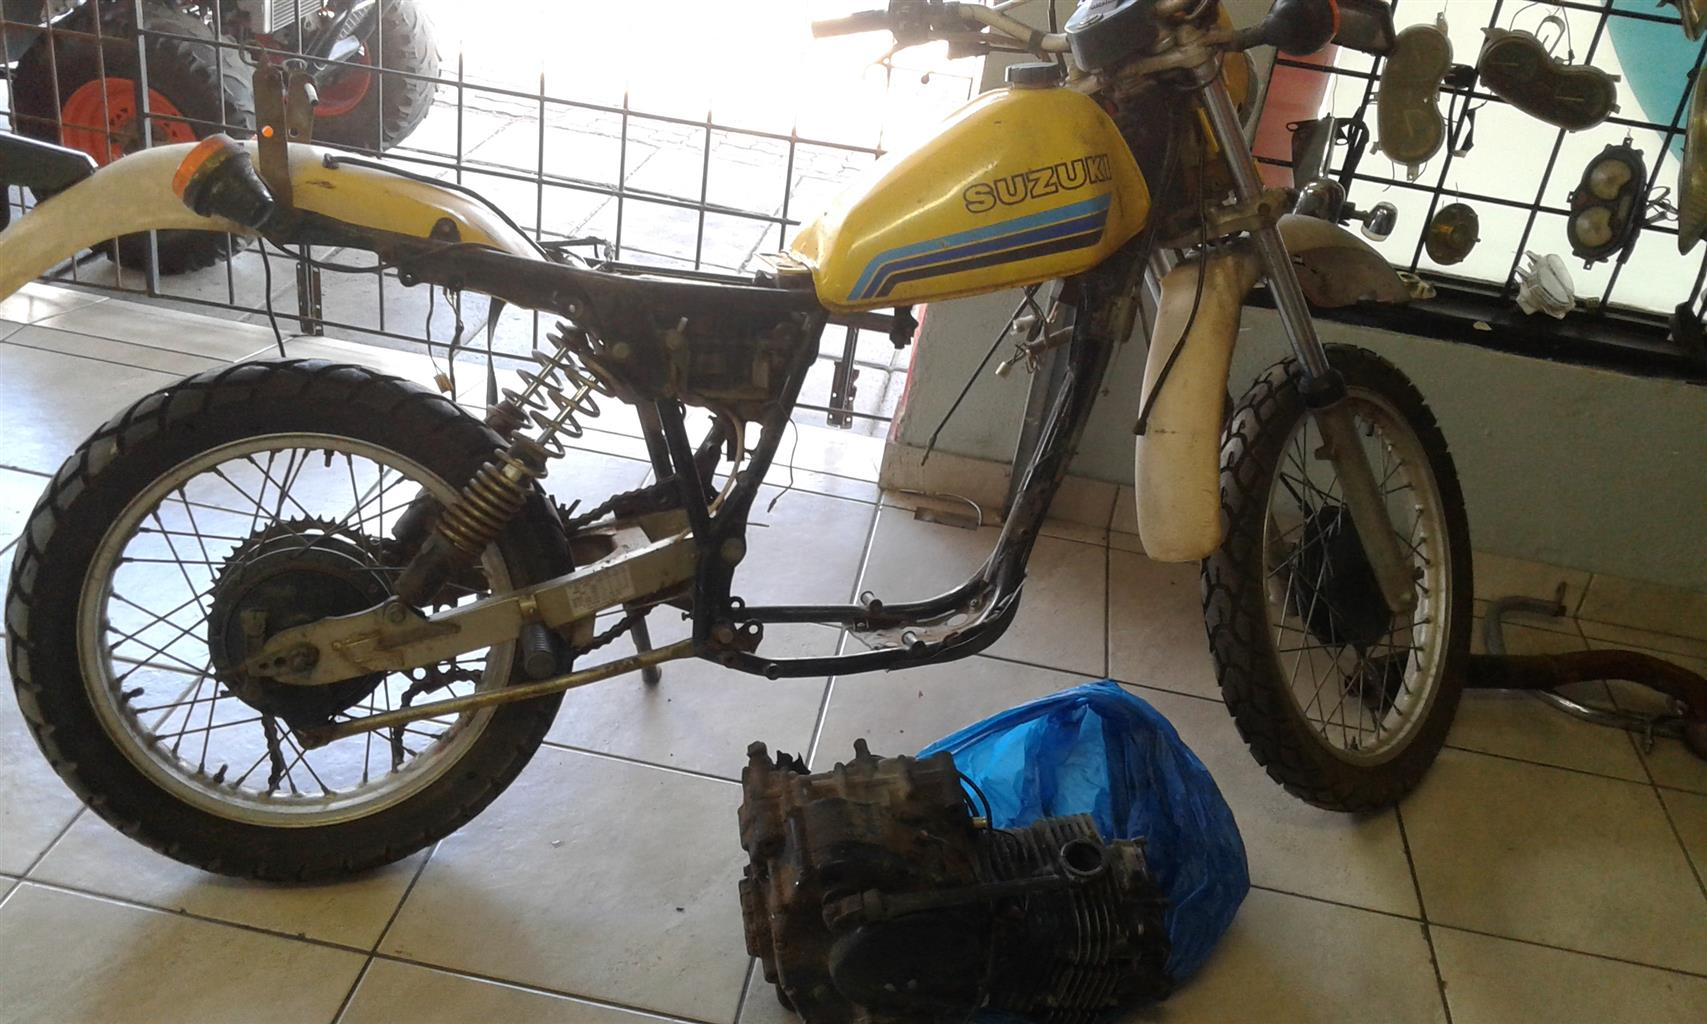 Suzuki DR 500 stripping for spares. Boksburg Bike Scrapyard